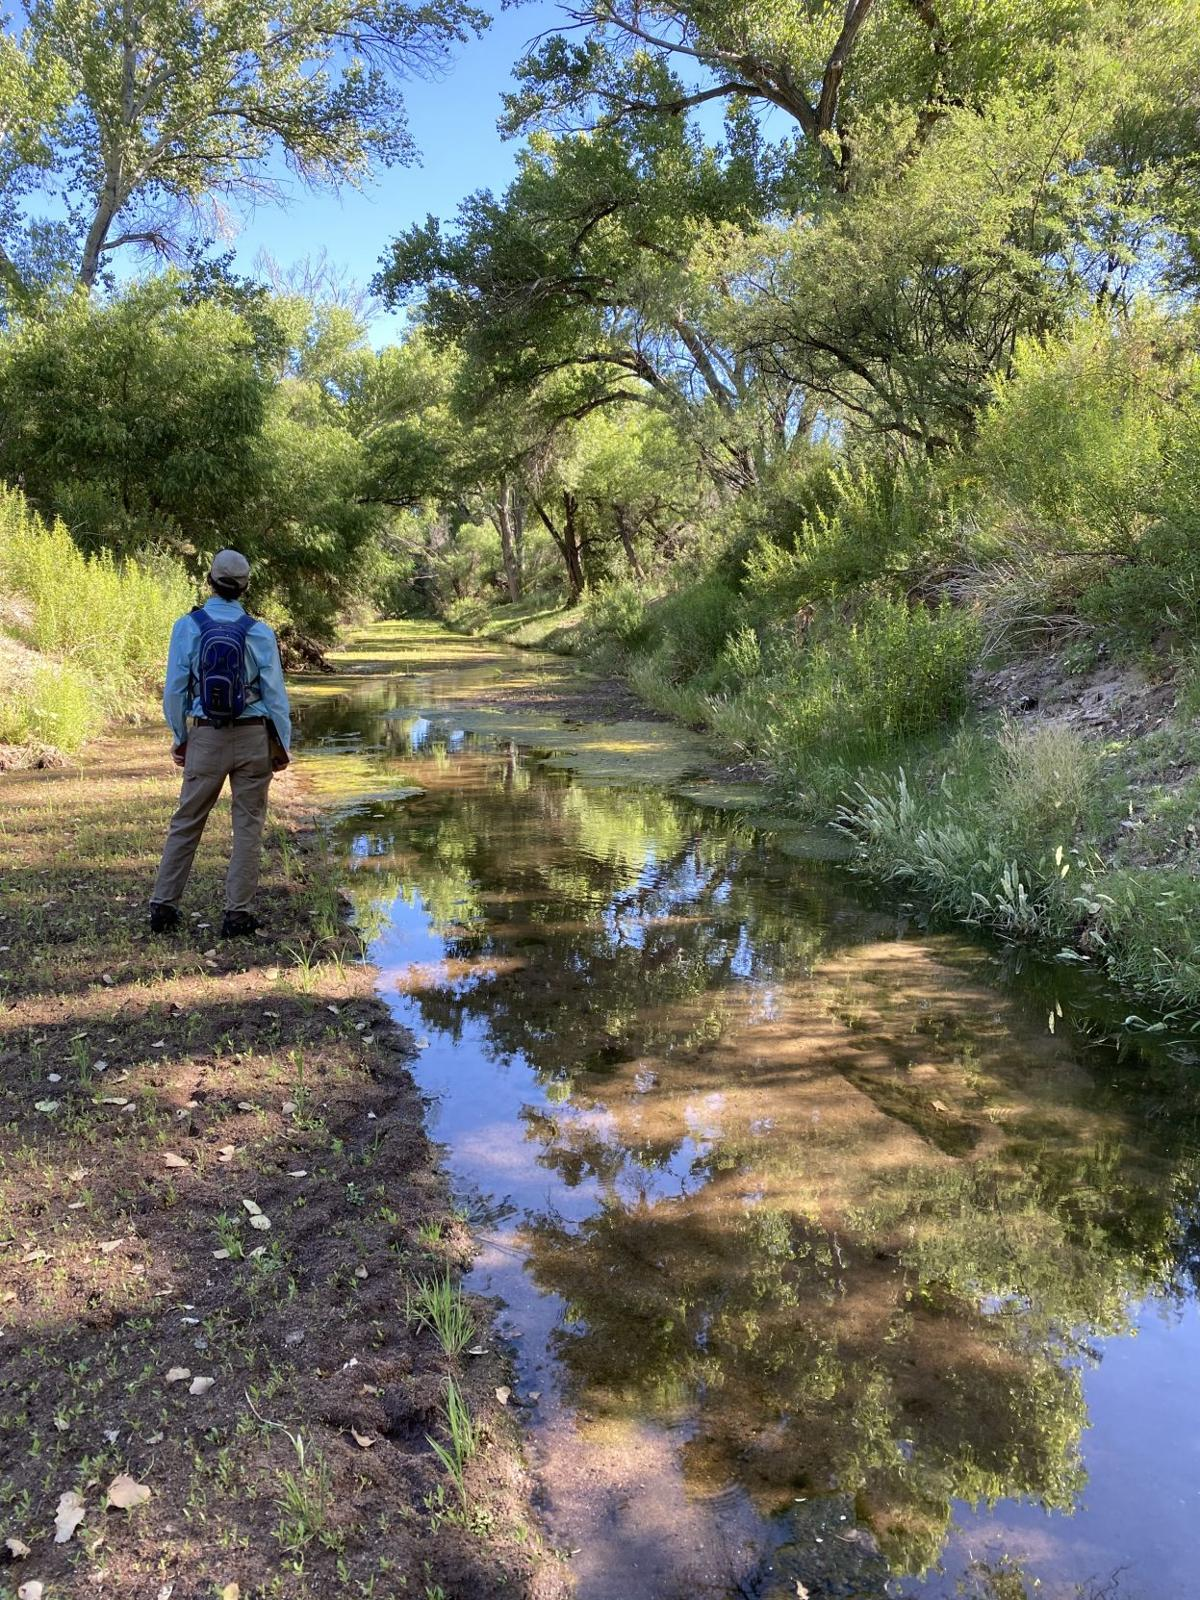 22nd annual wet/dry mapping of San Pedro